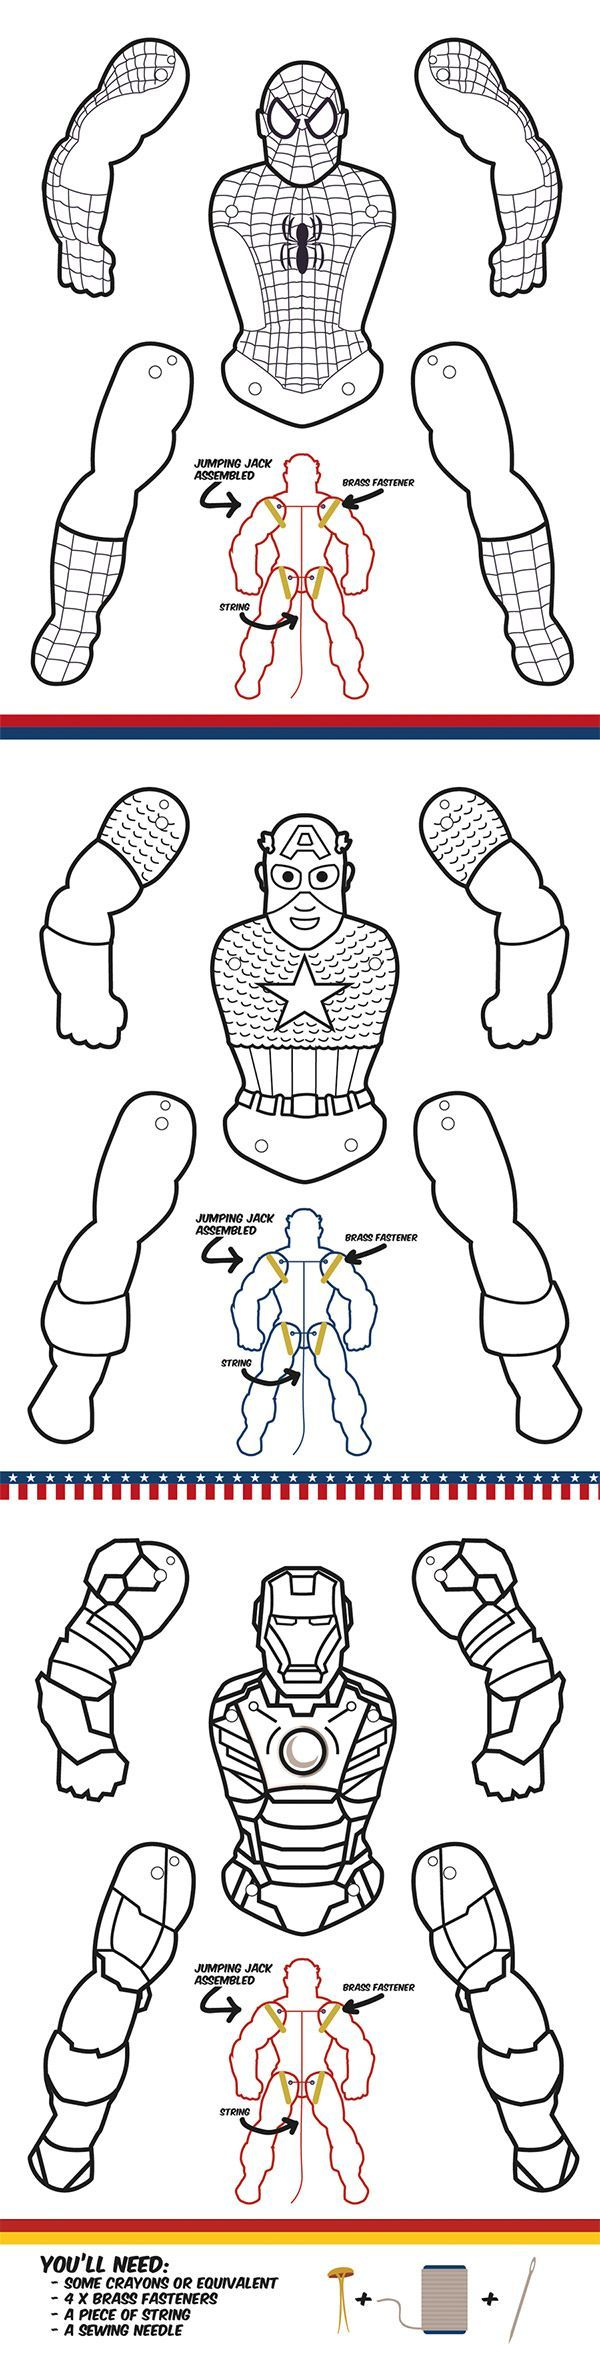 Uncategorized Superhero Printable Activities superhero jumping jacks coloring edition papercraft puppet edition